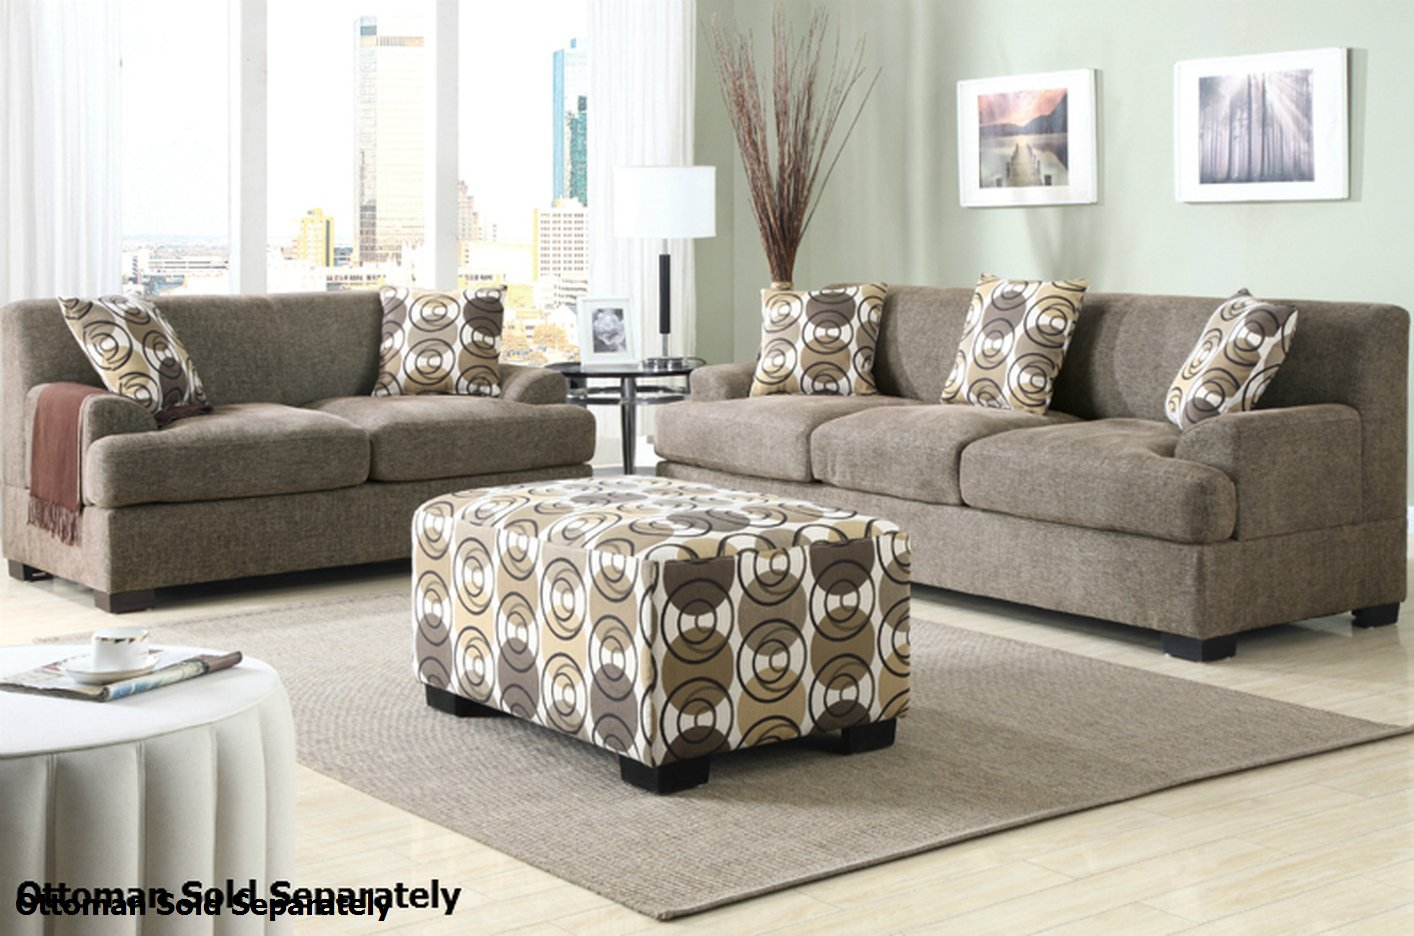 Poundex Montreal F7450 F7449 Beige Fabric Sofa and